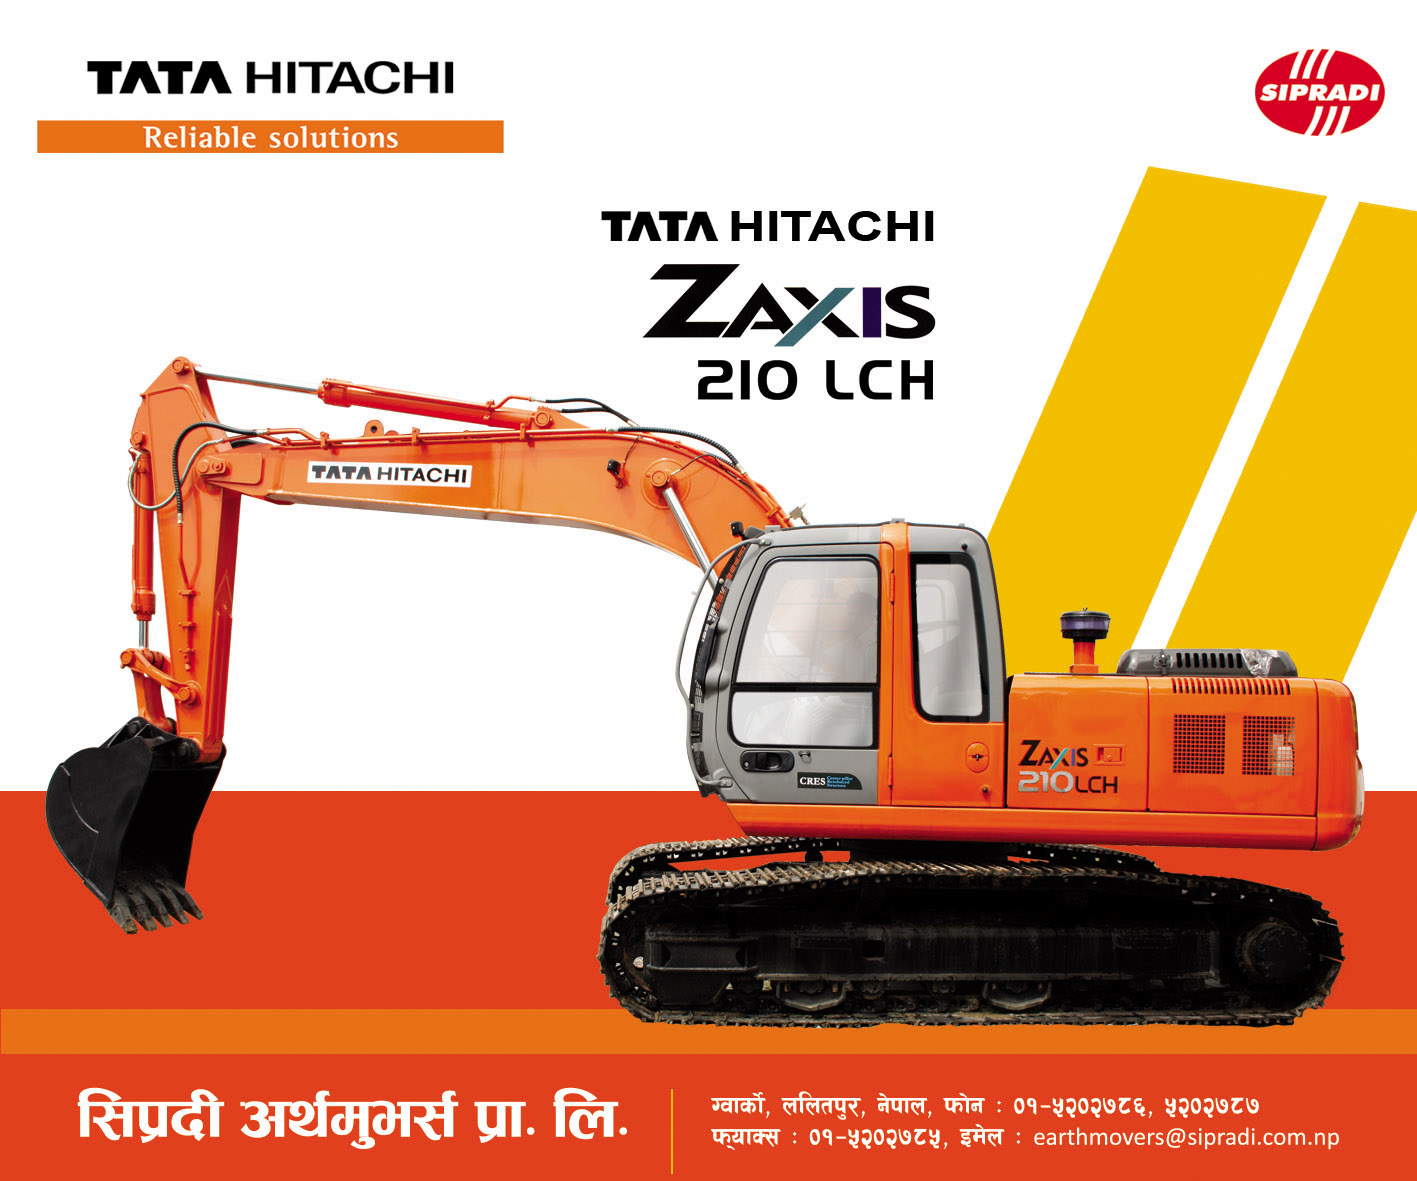 TATA Hitachi ZAXIS 210 LCH Paper Advertisement